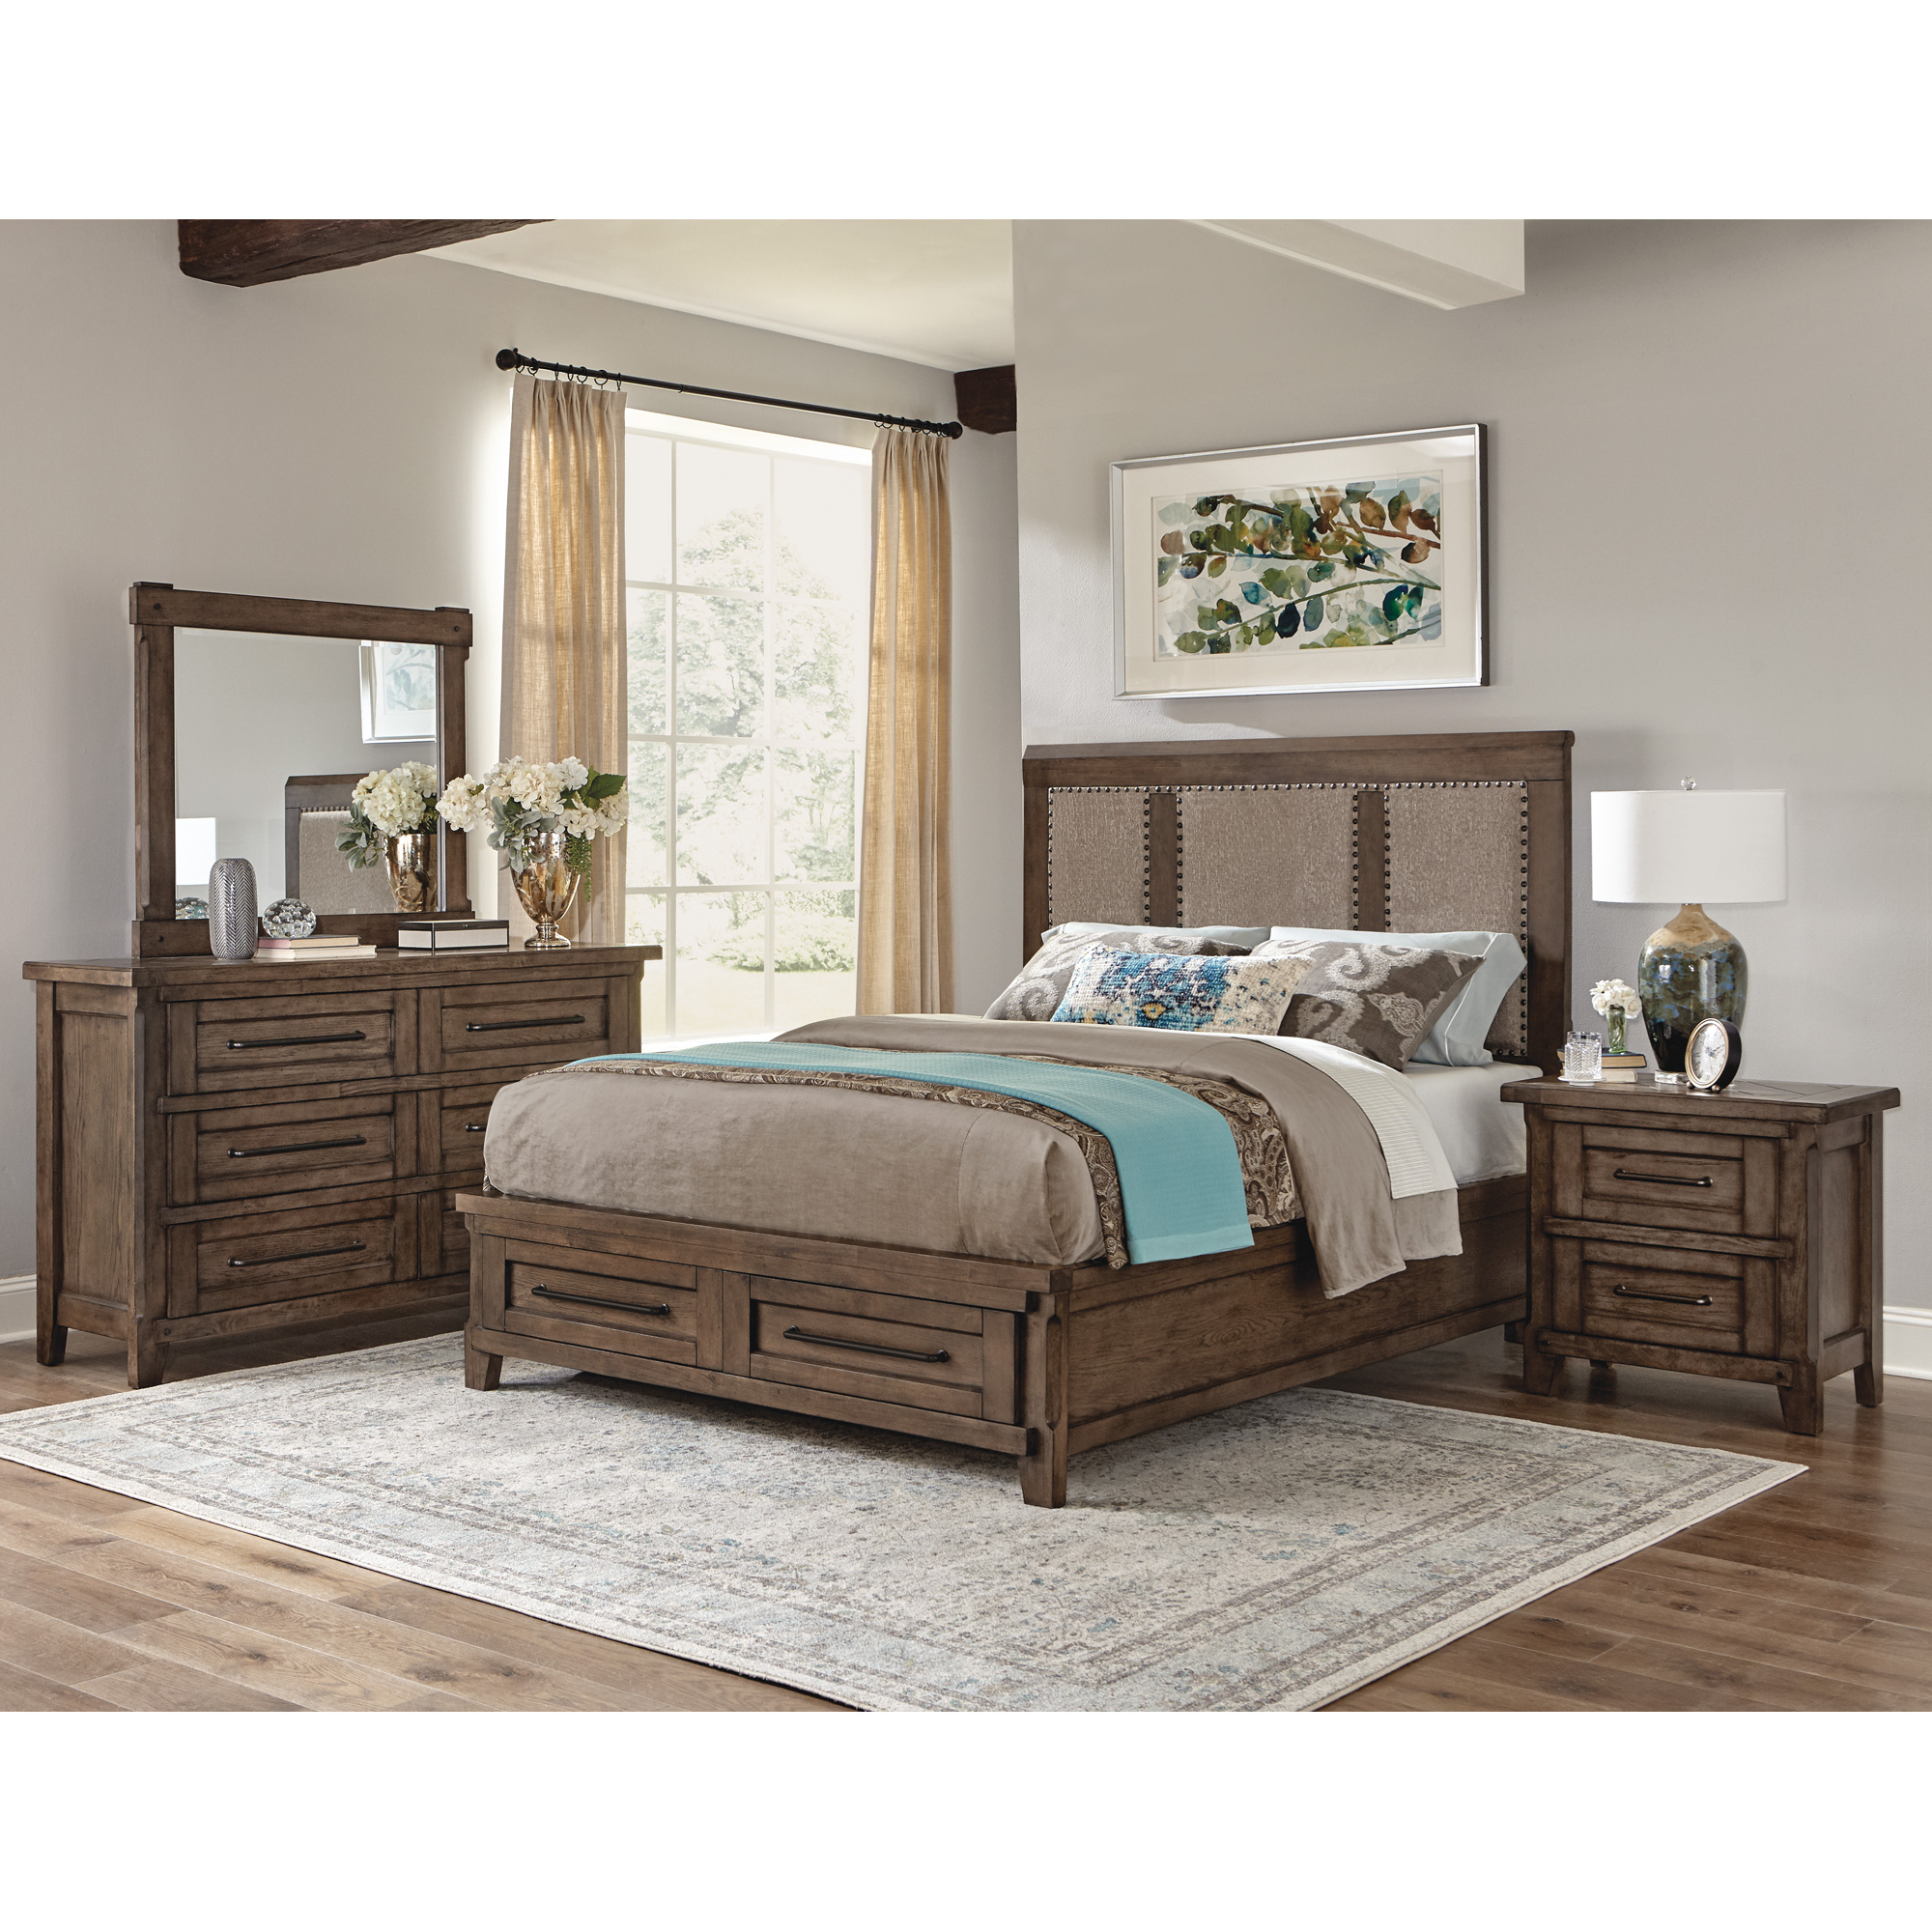 Davis Direct | Patches Gray Brown Queen Upholstered Storage 4 Piece Room Group Bedroom Set